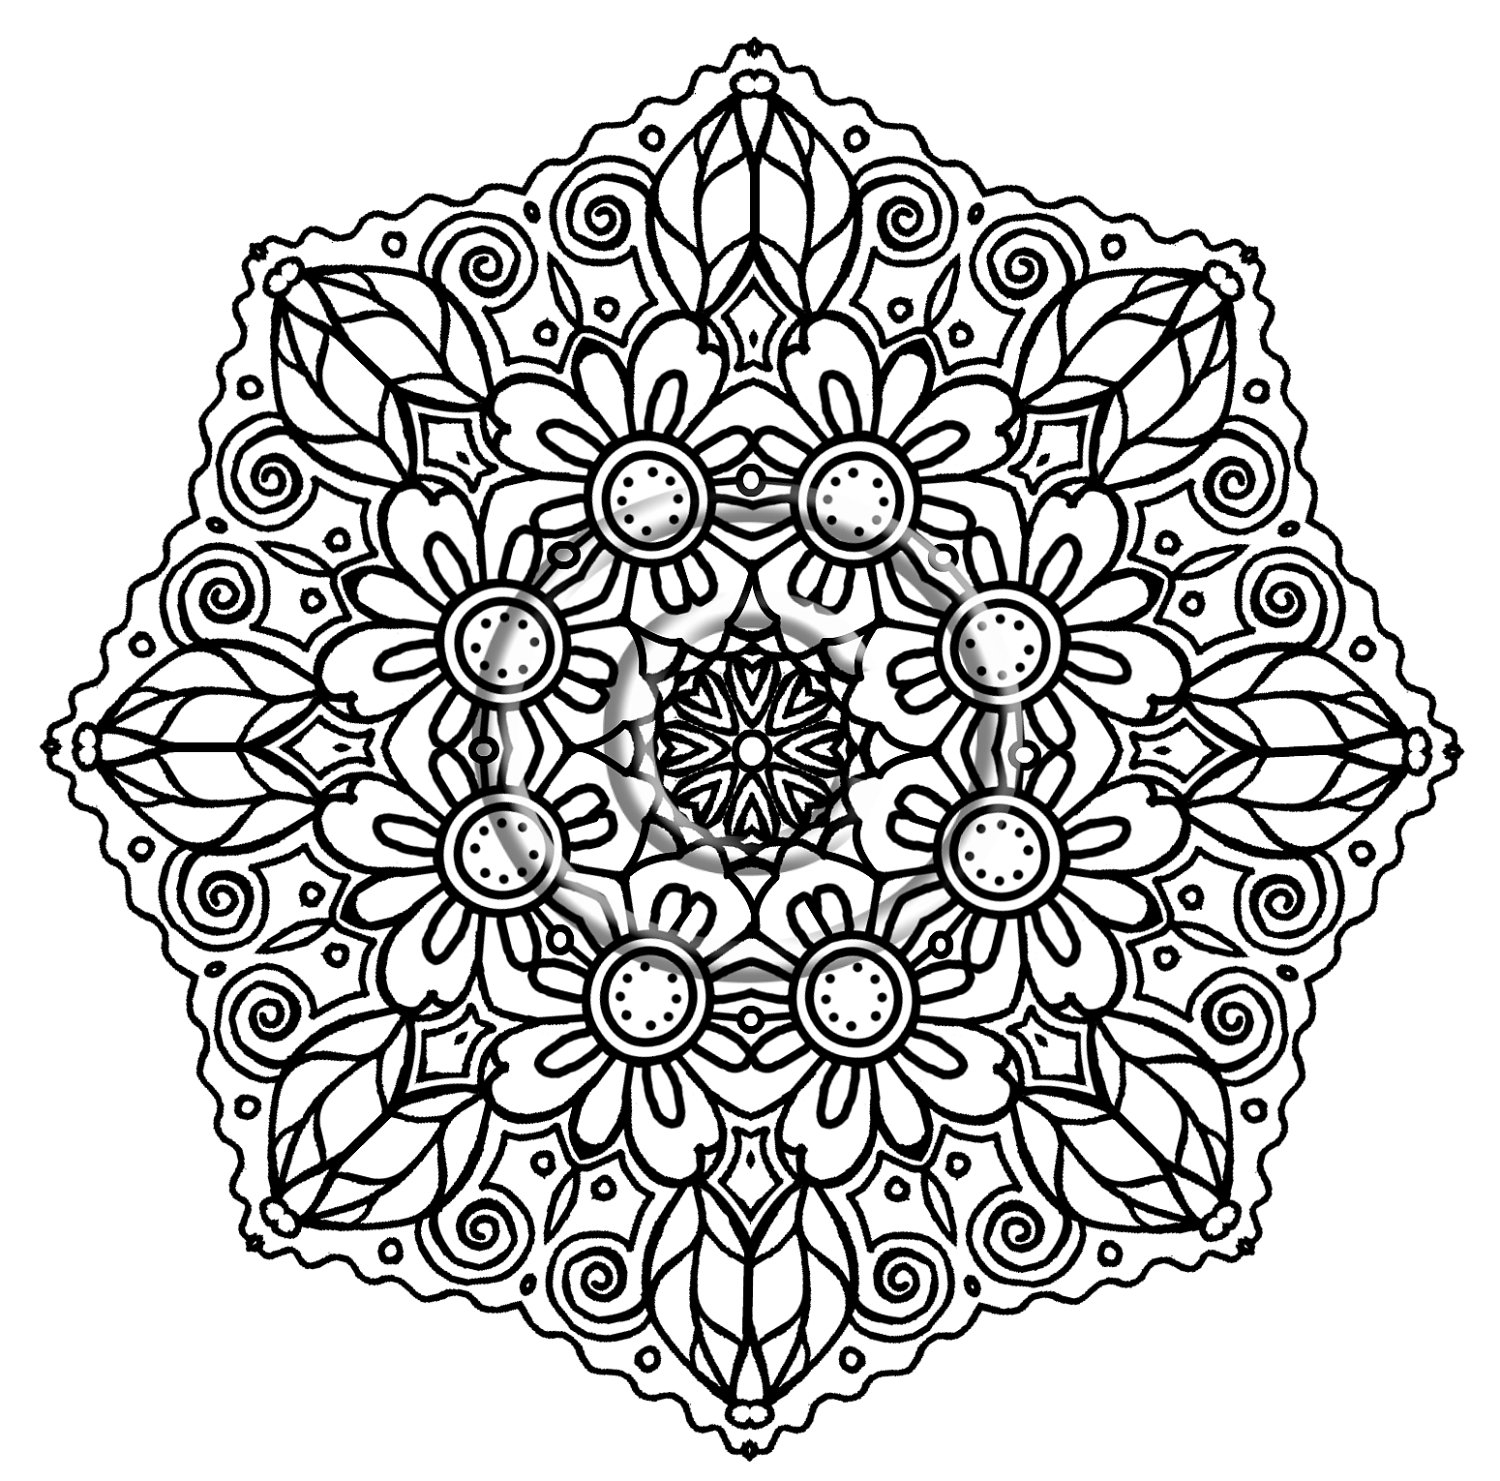 Intricate Mandala Coloring Pages Download